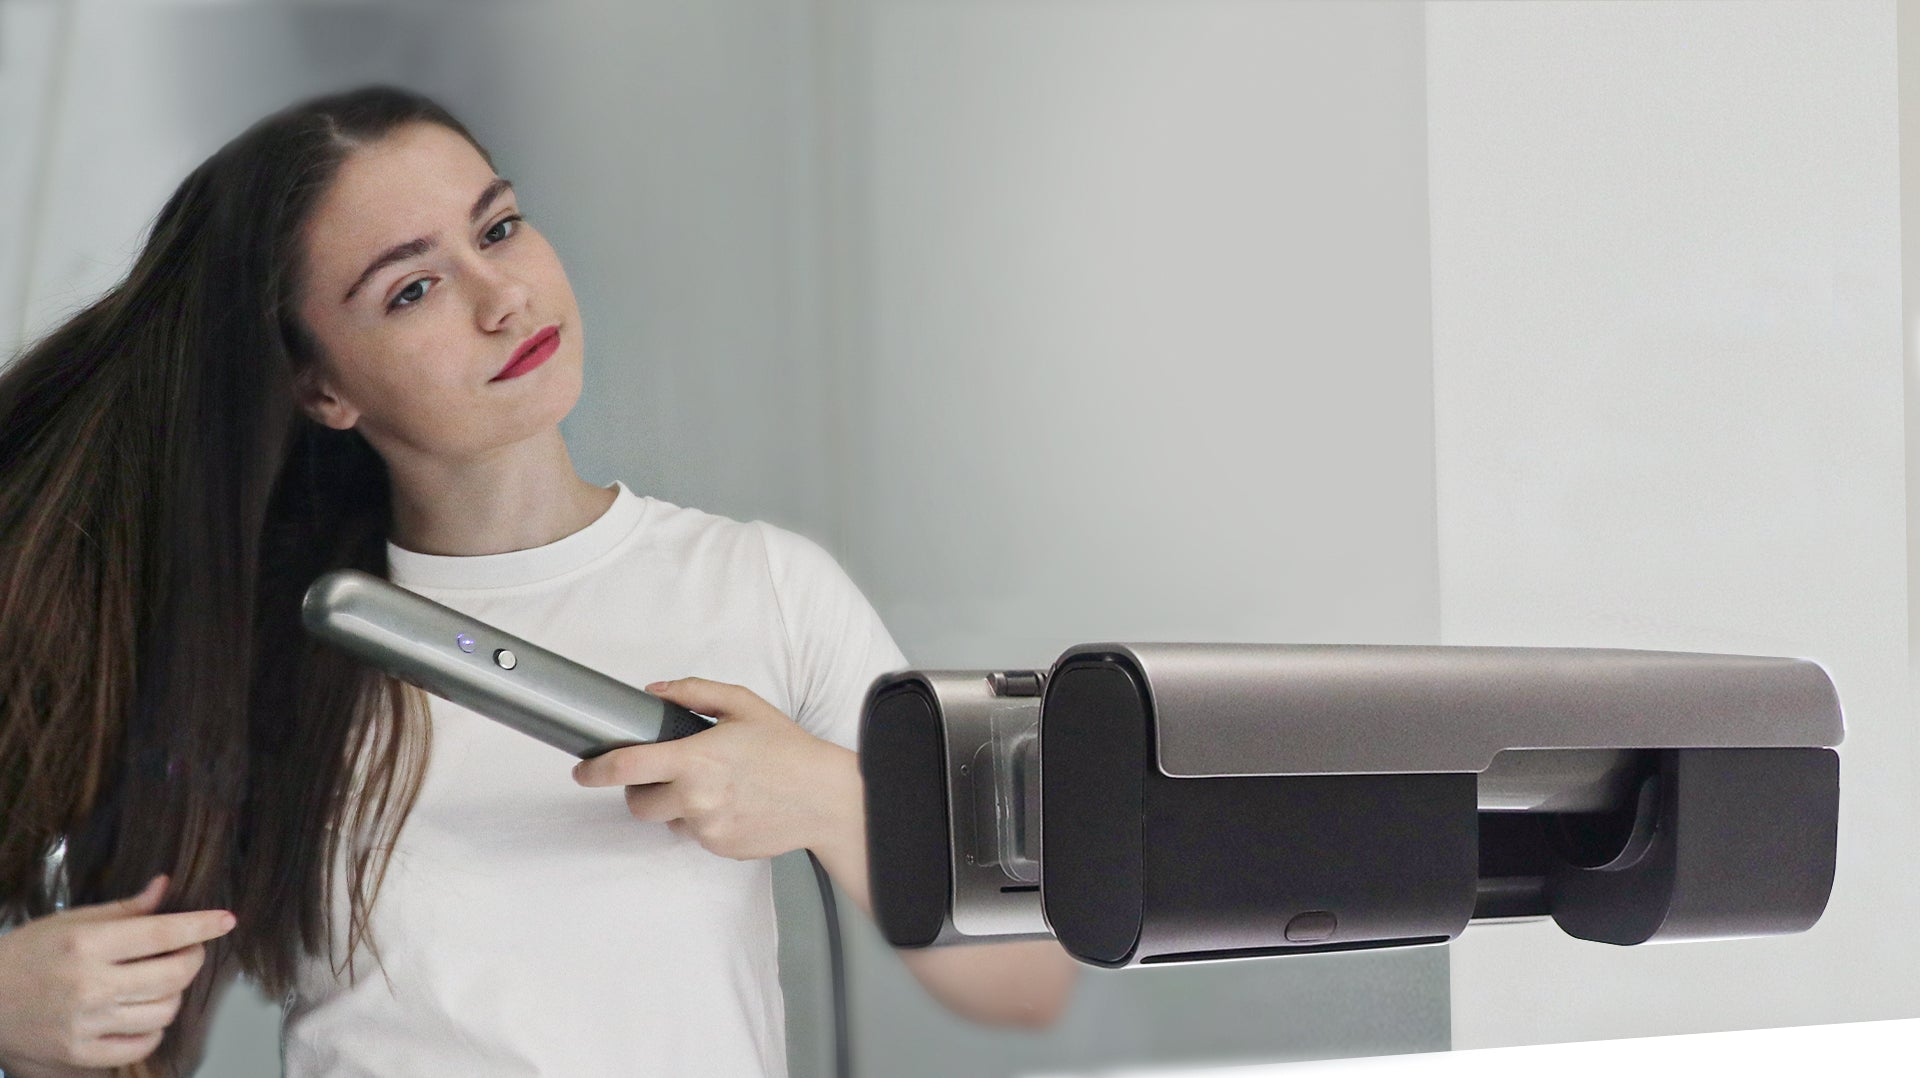 Hair and hand dryer 2 in 1